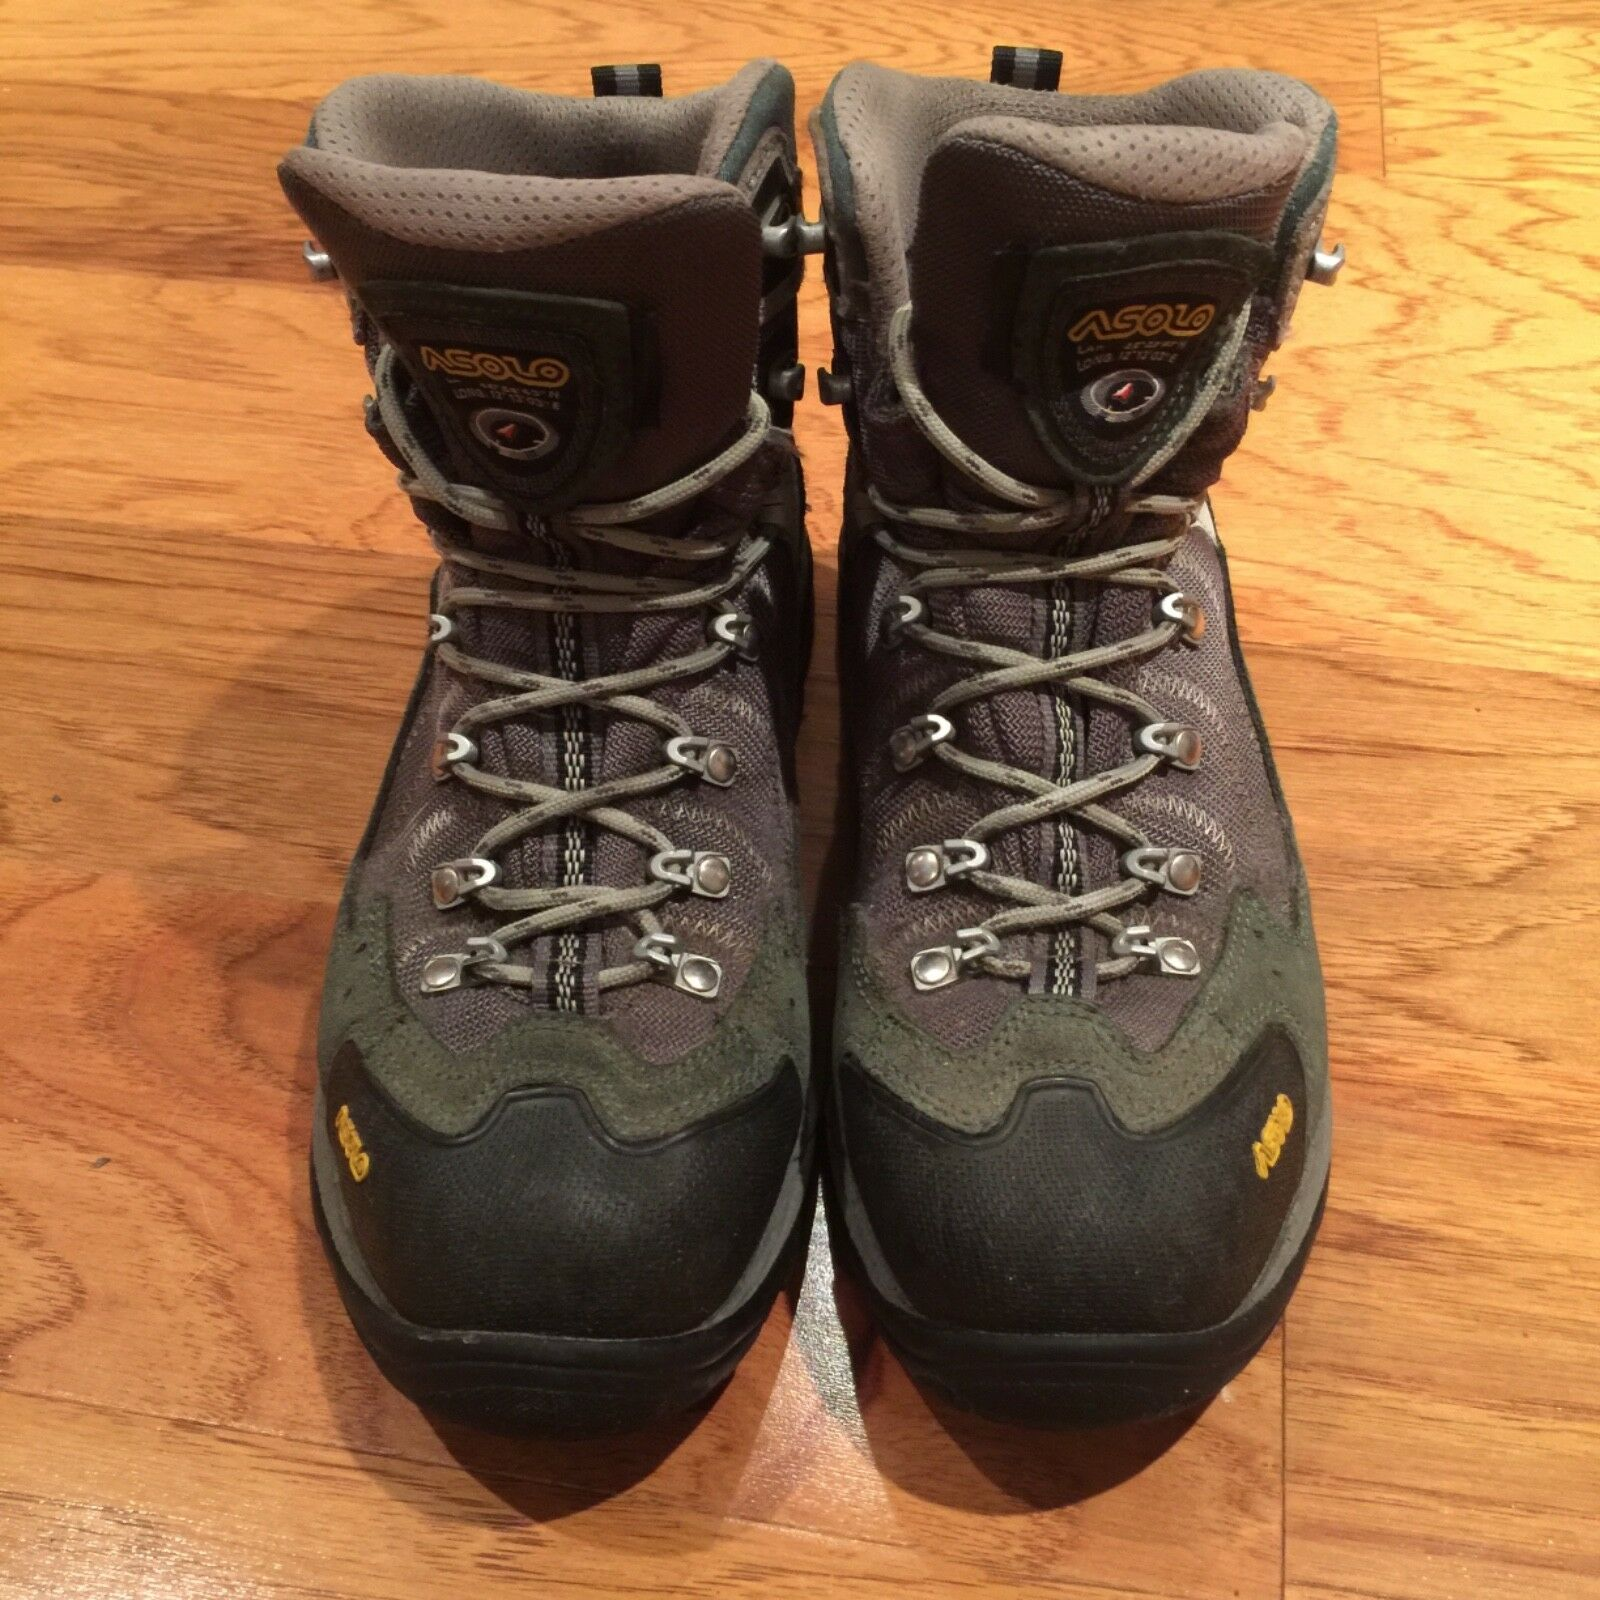 Womens Asolo Hiking Boots, size 8.5